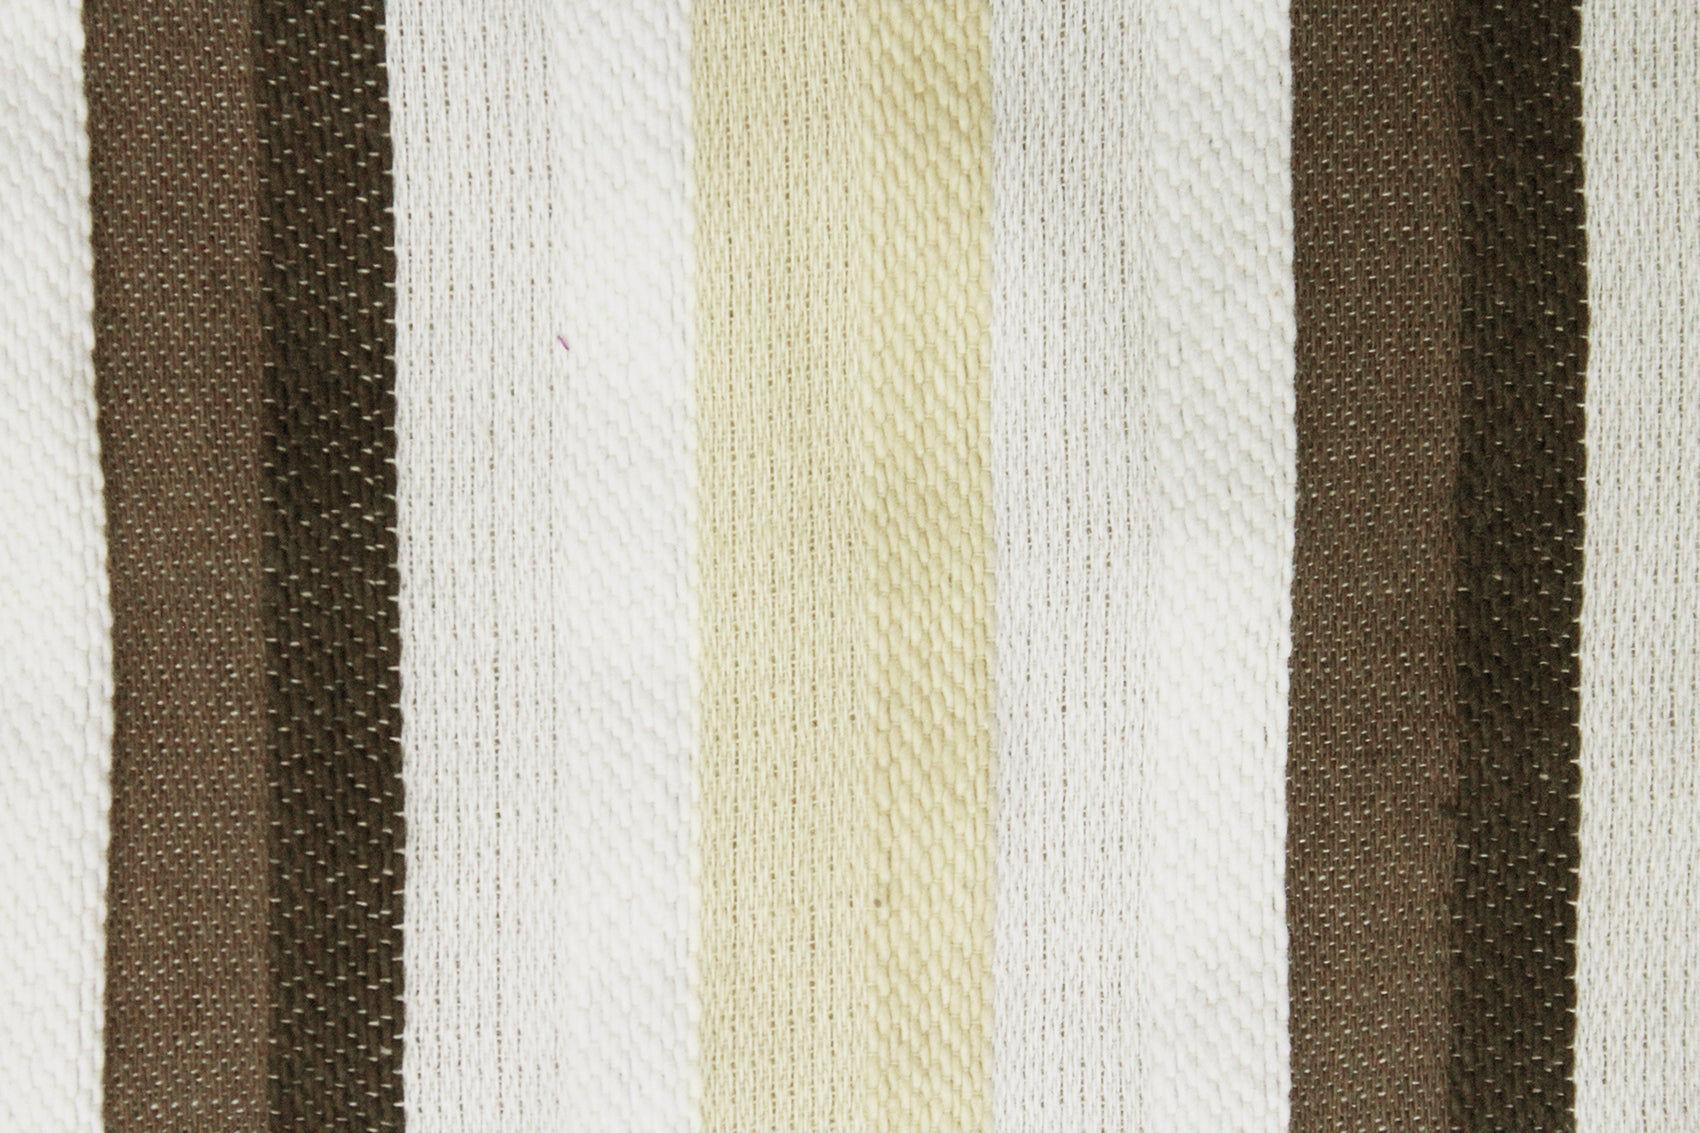 Woven Embossed Stripe Cotton Cushion Cover - Brown & Beige